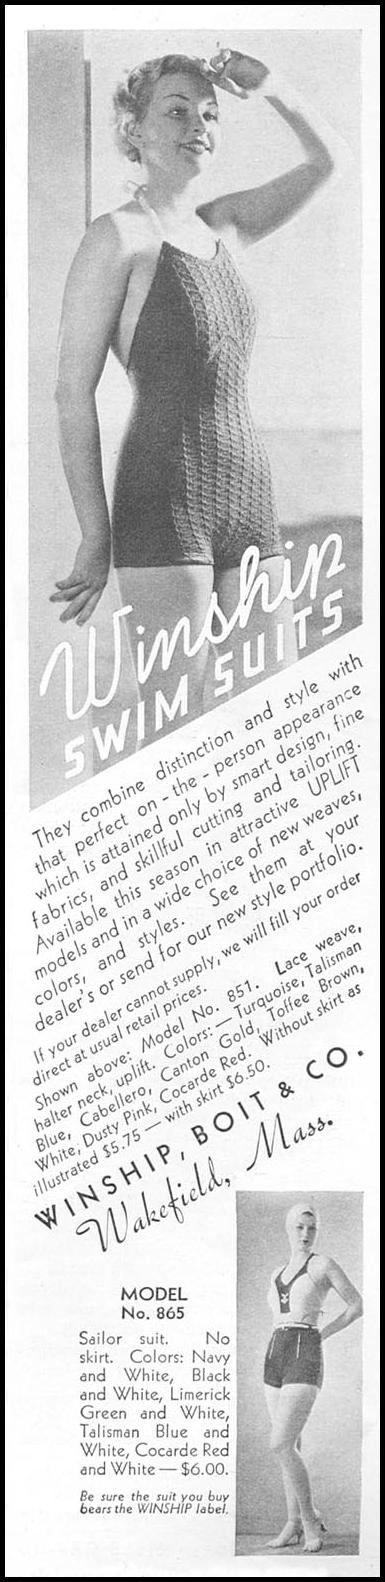 WINSHIP SWIM SUITS GOOD HOUSEKEEPING 06/01/1935 p. 149